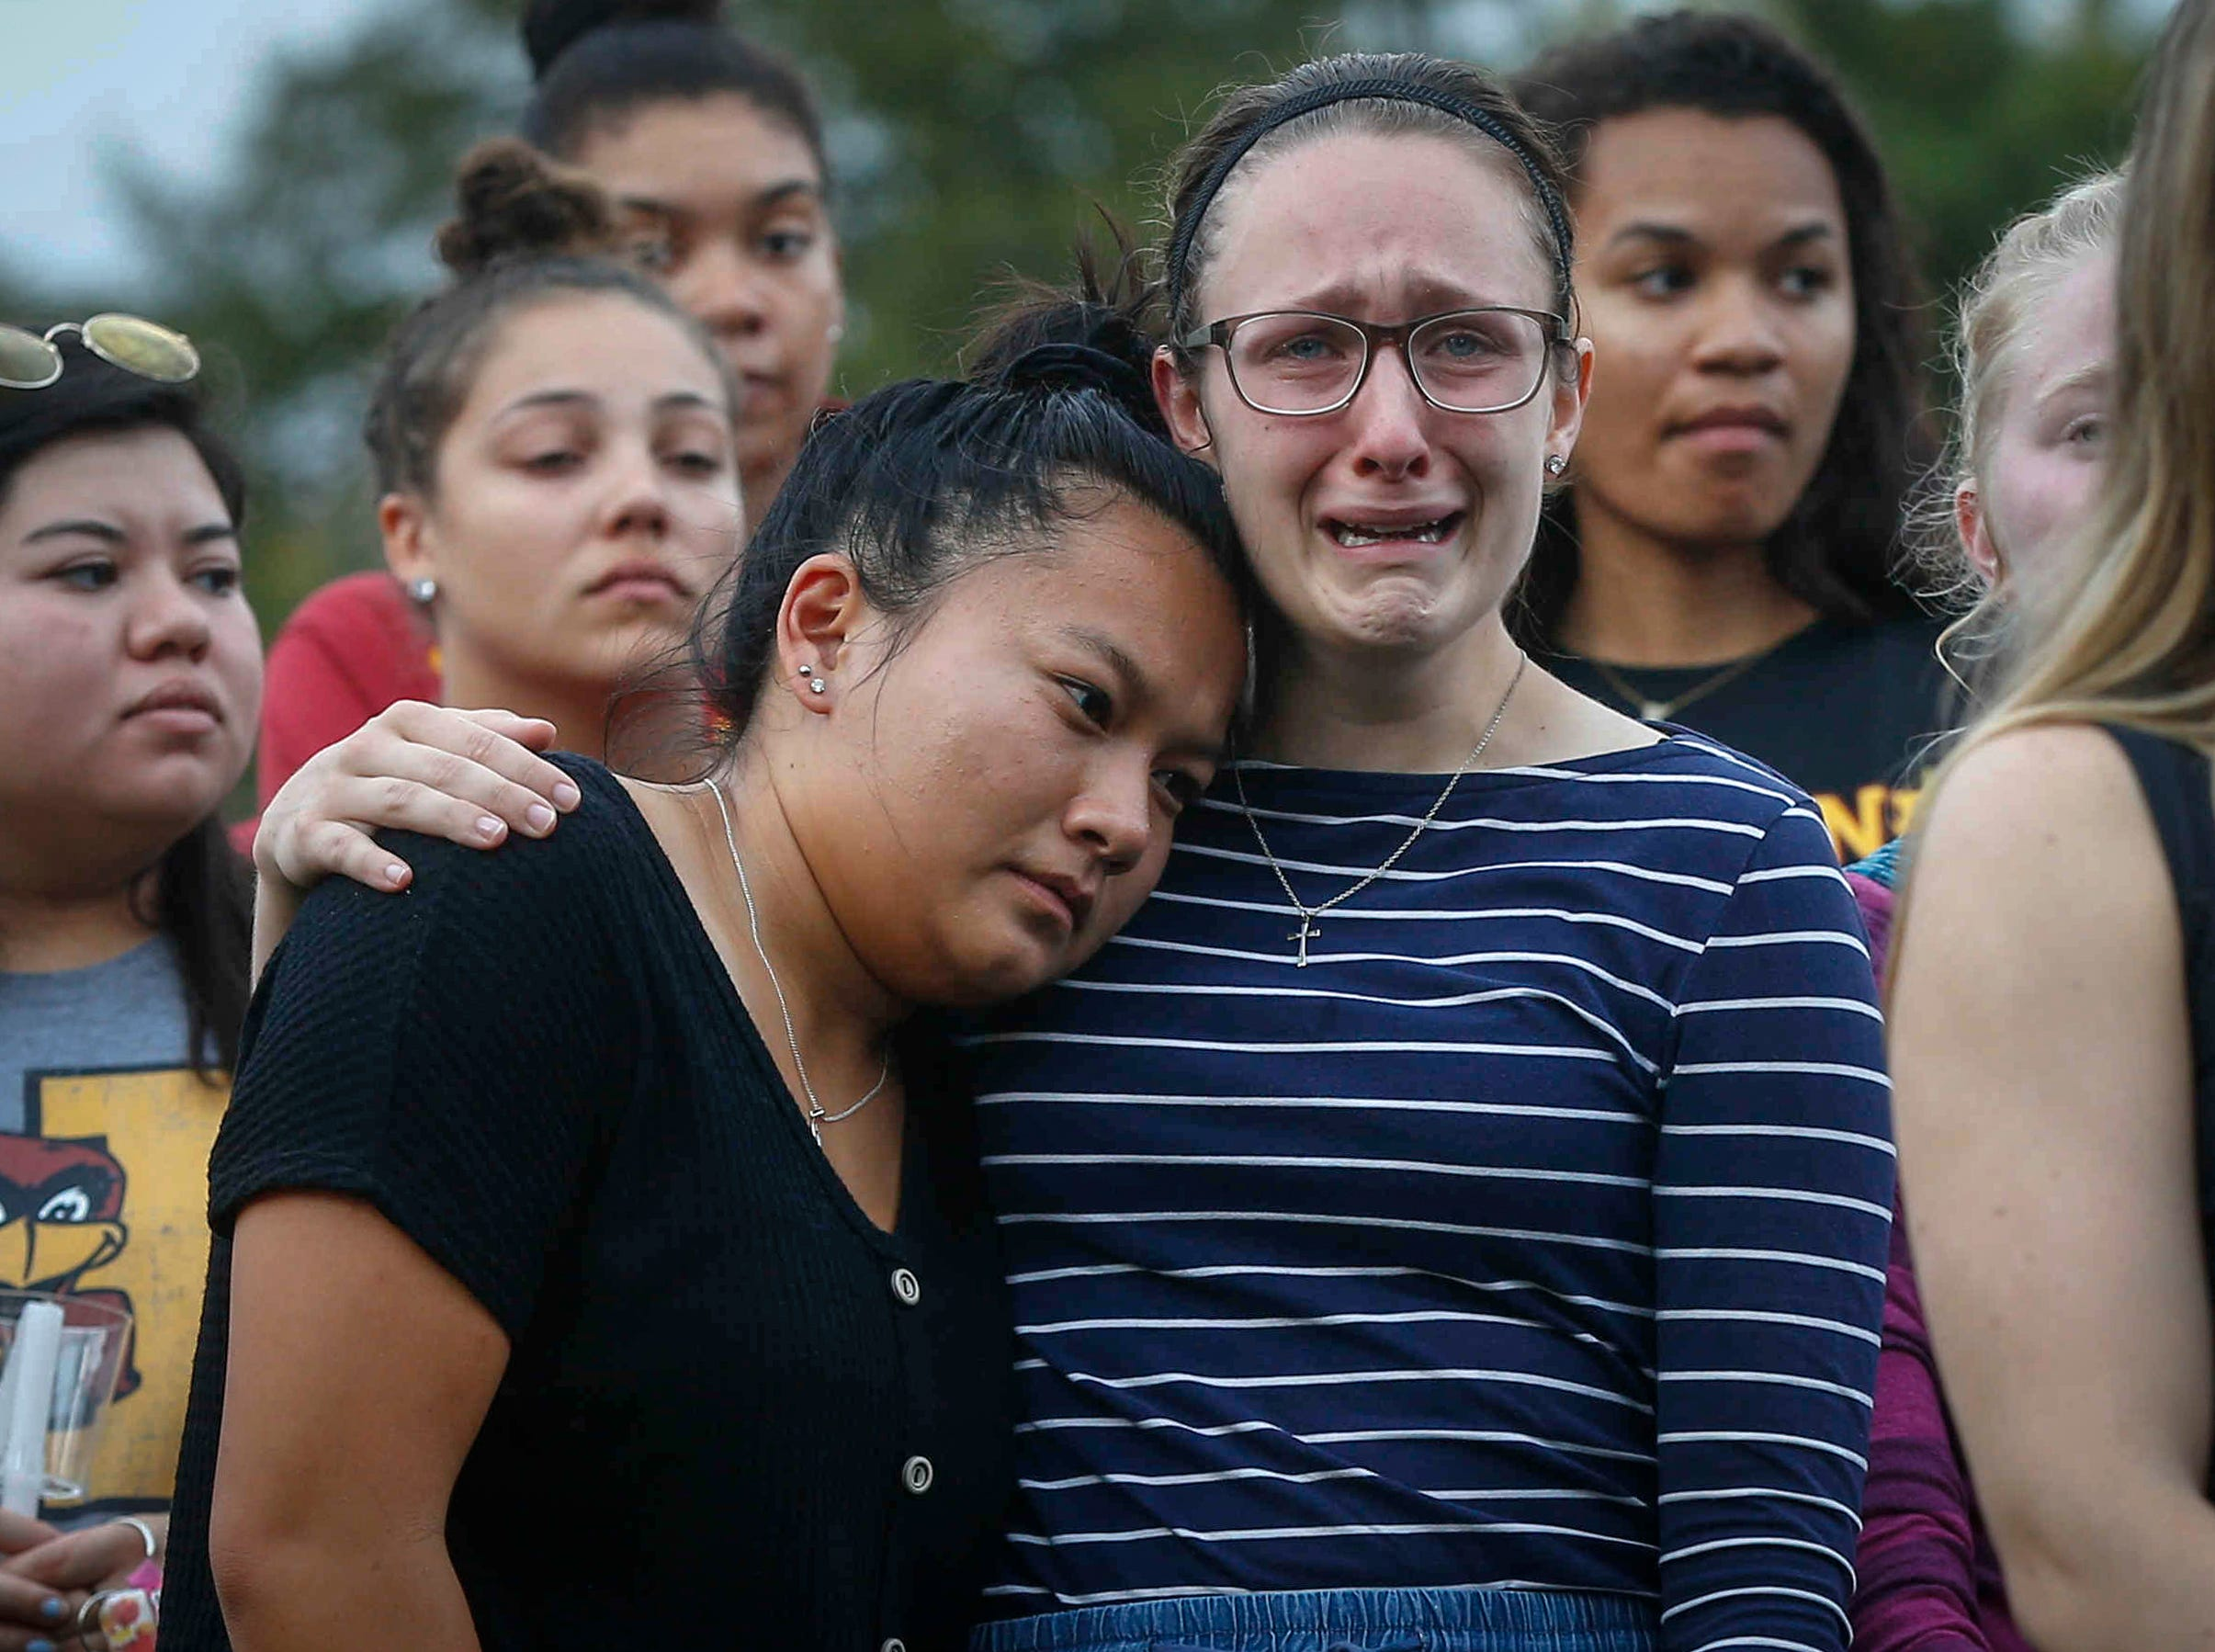 Iowa State students and friends of Celia Barquin Arozamena succumb to emotions during a vigil on Wednesday, Sept. 19, 2018, in Ames.